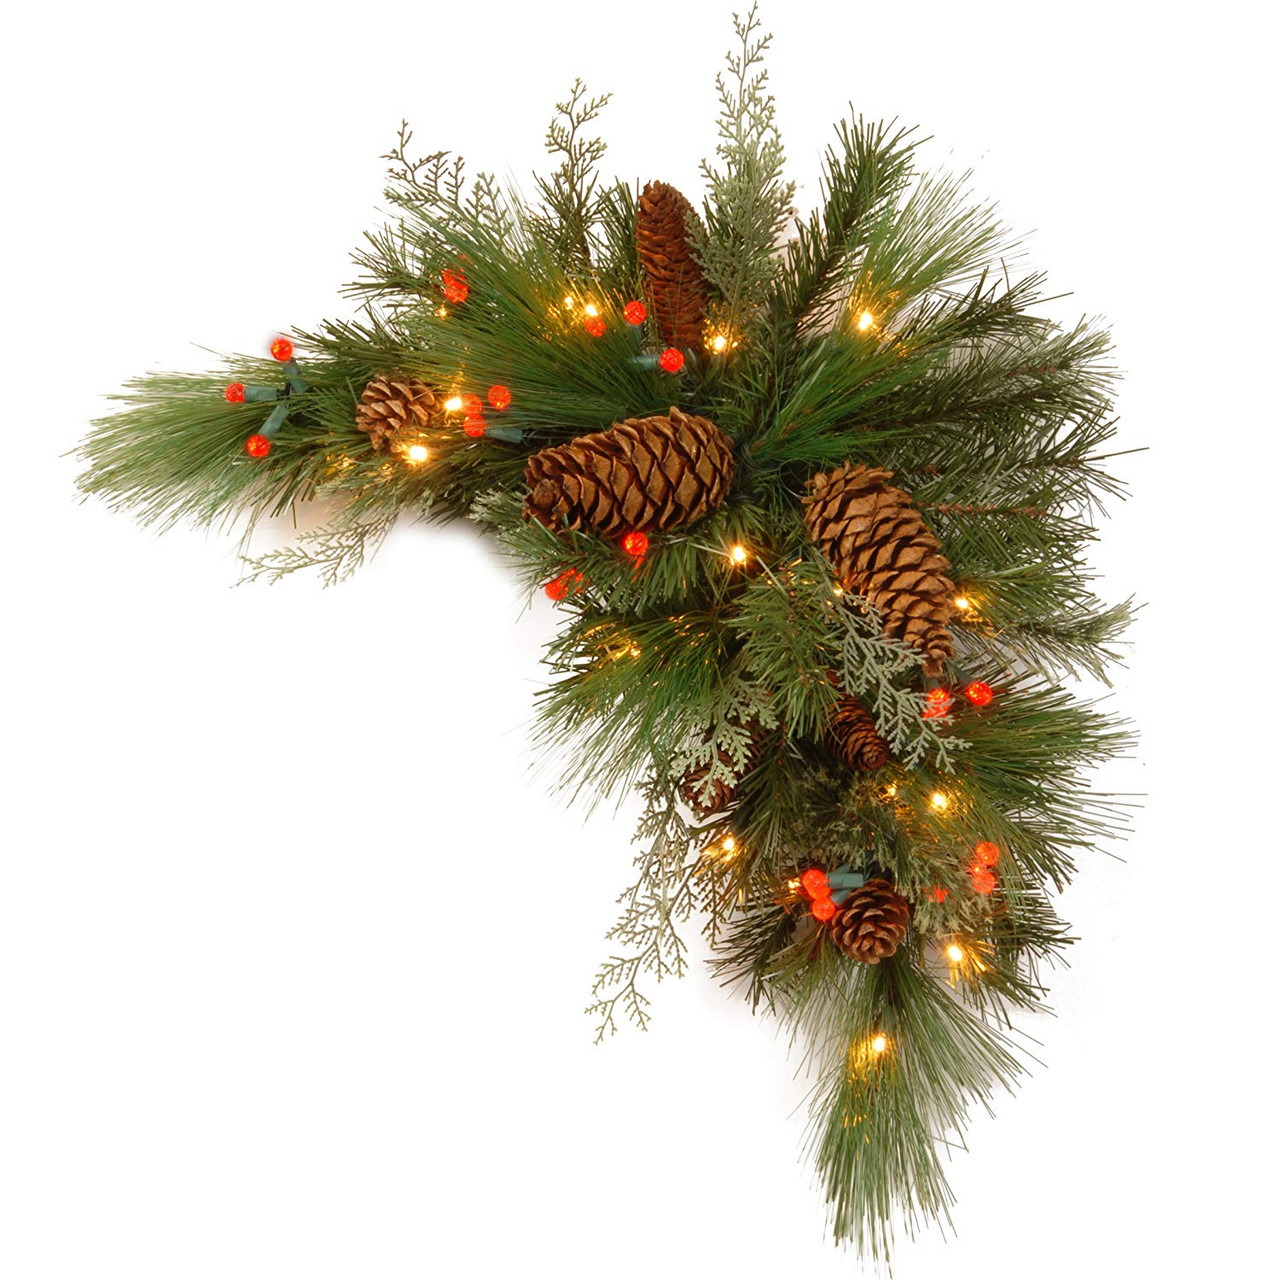 Christmas Swag.30 Pre Lit Green And Brown Artificial Pine Christmas Swag Led Lights 31103717